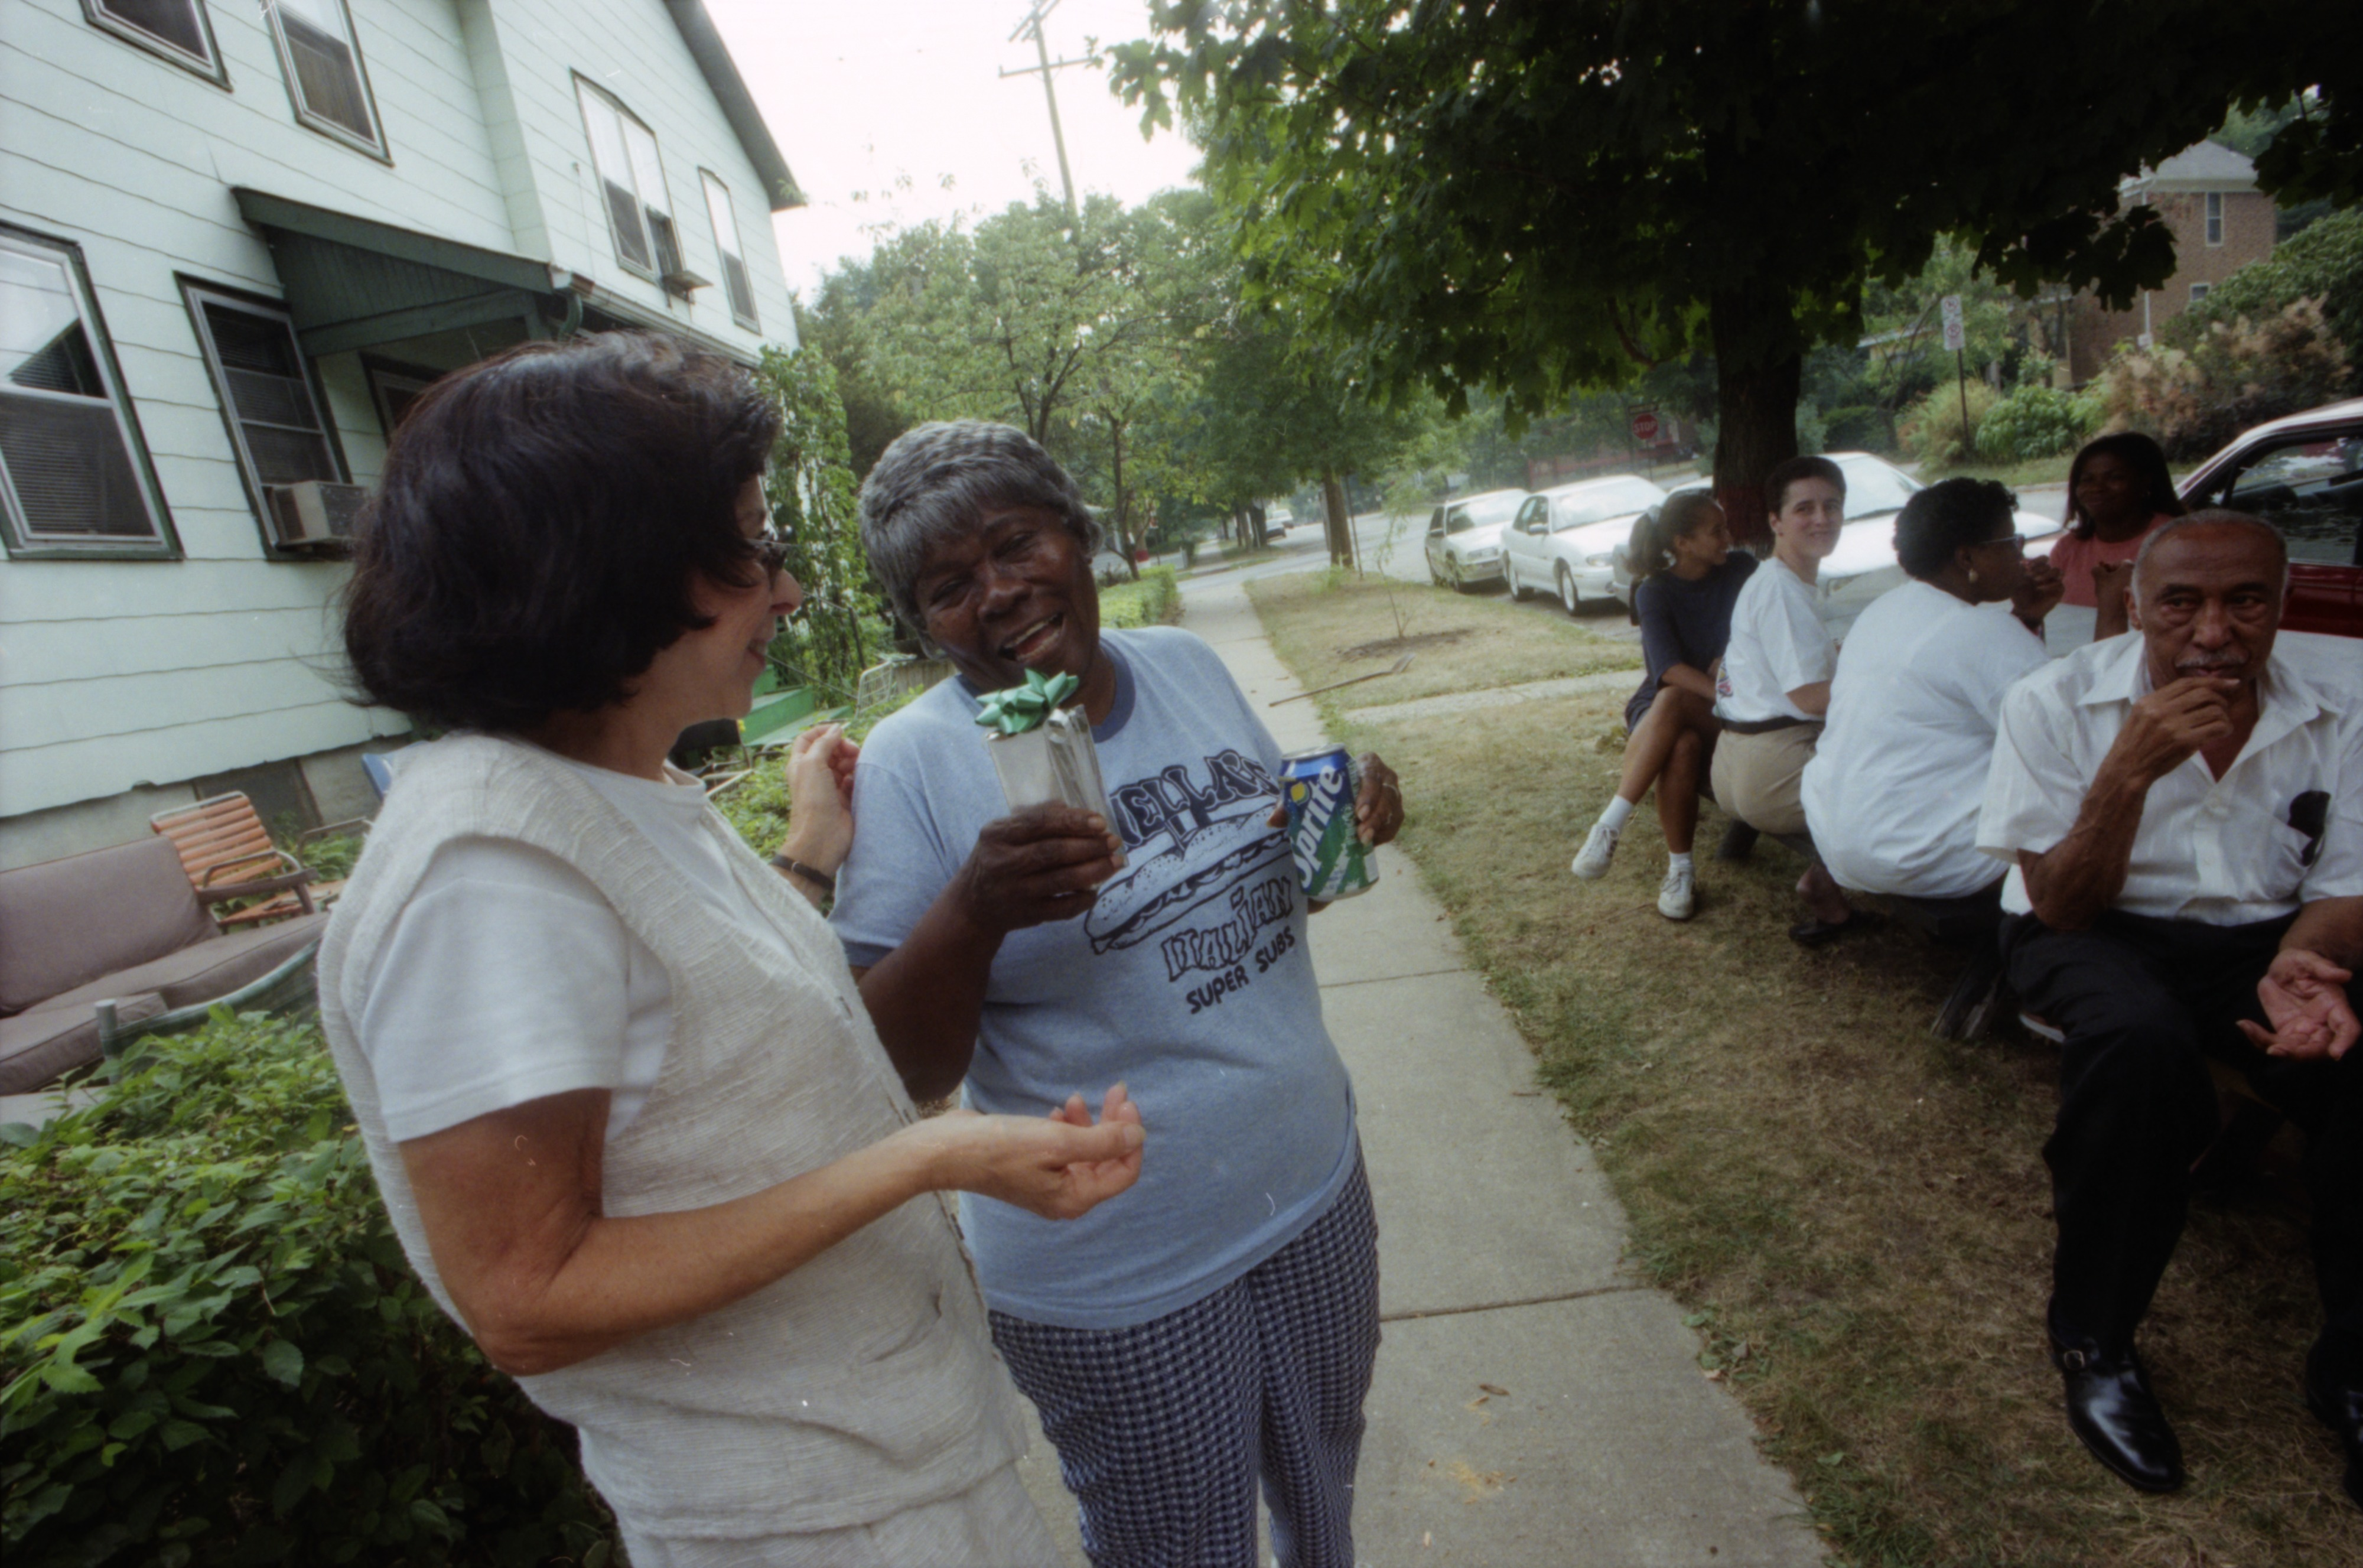 Johnnie Mae Seeley's annual barbecue, September 2, 1996 image